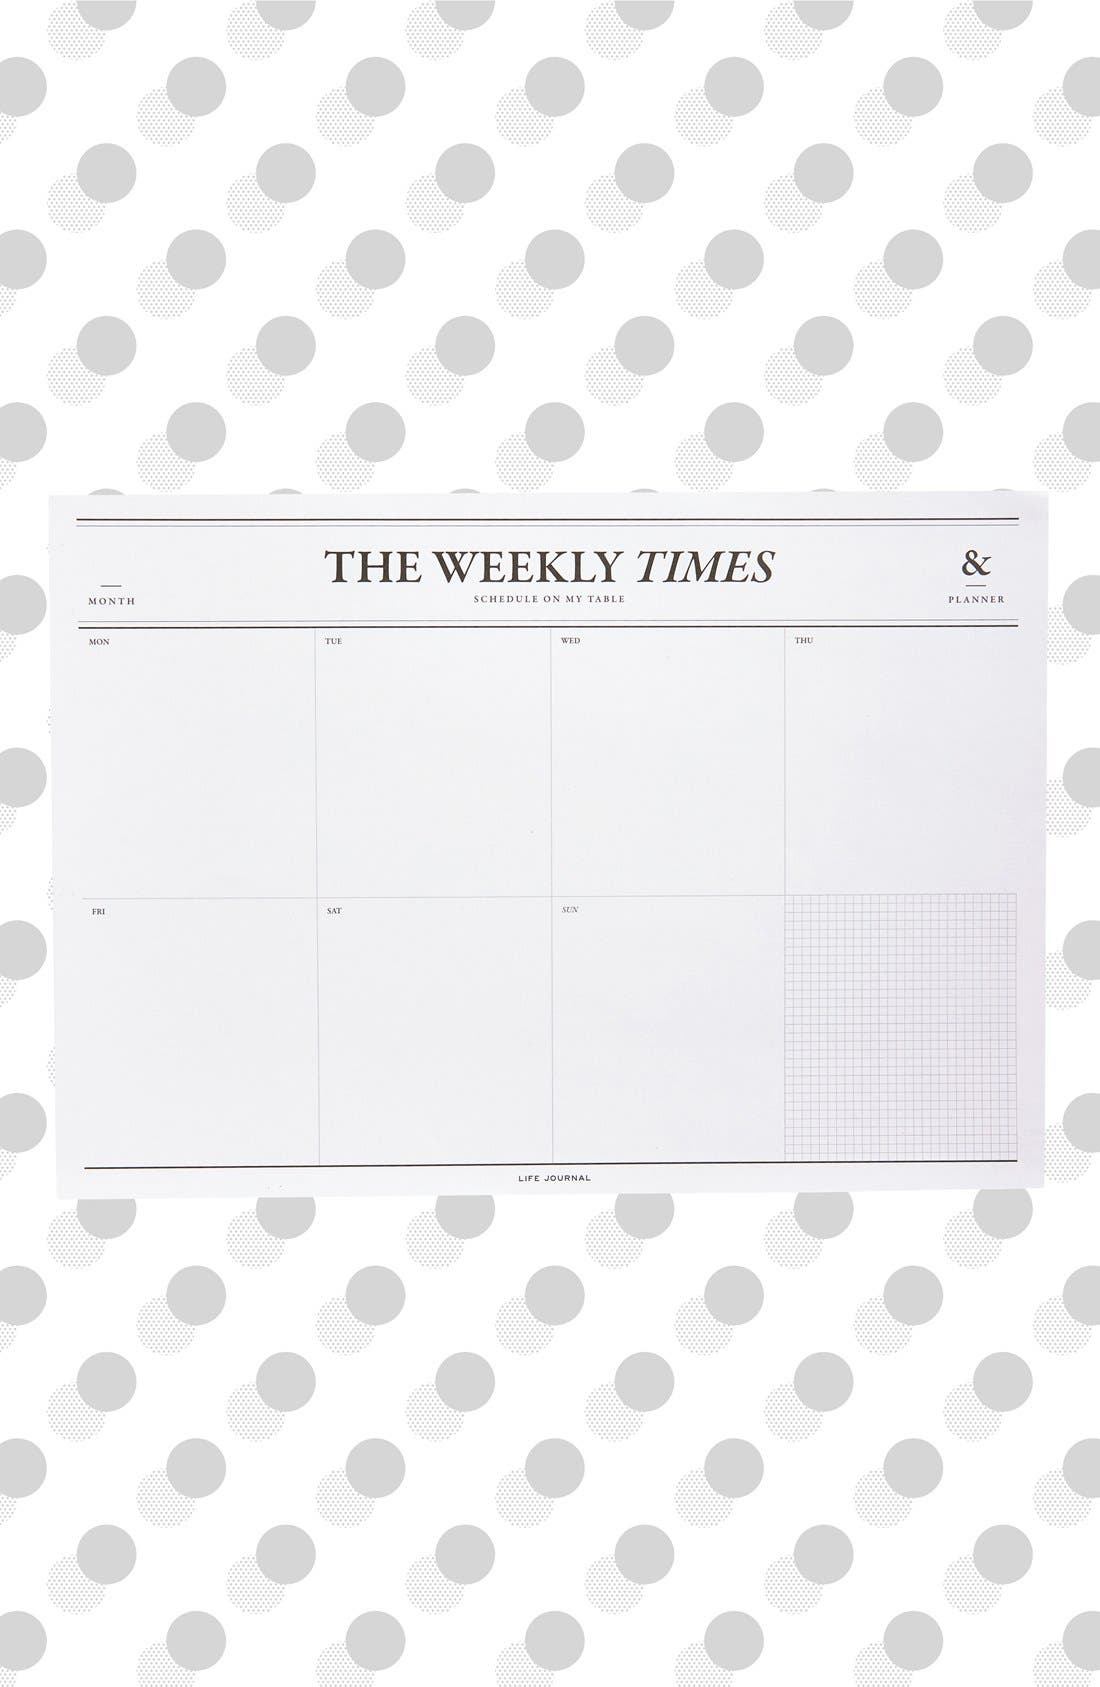 'The Weekly Times' Desk Notepad & Planner,                             Main thumbnail 1, color,                             101